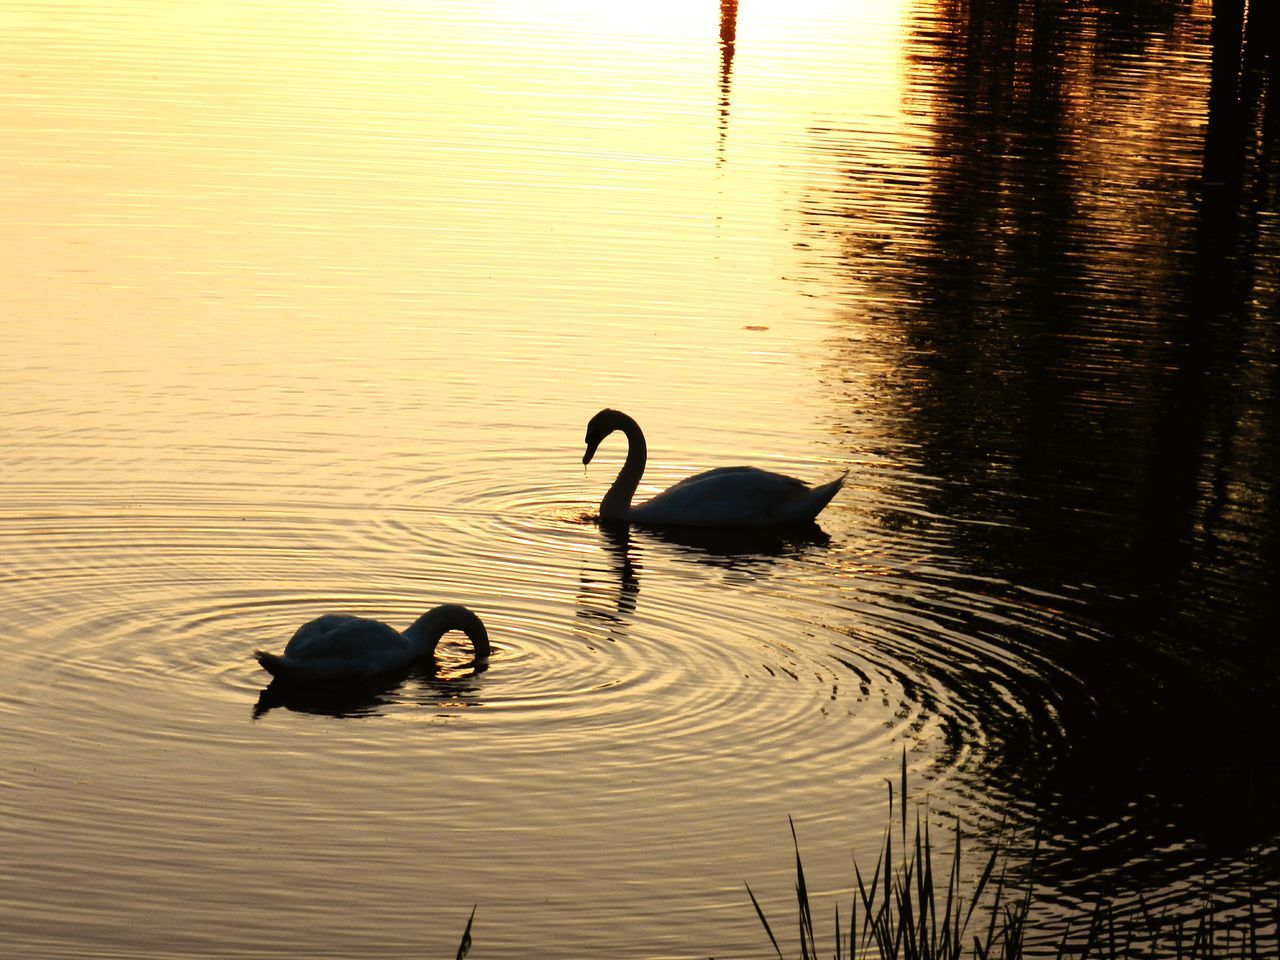 Swans Swimming In Lake During Sunset